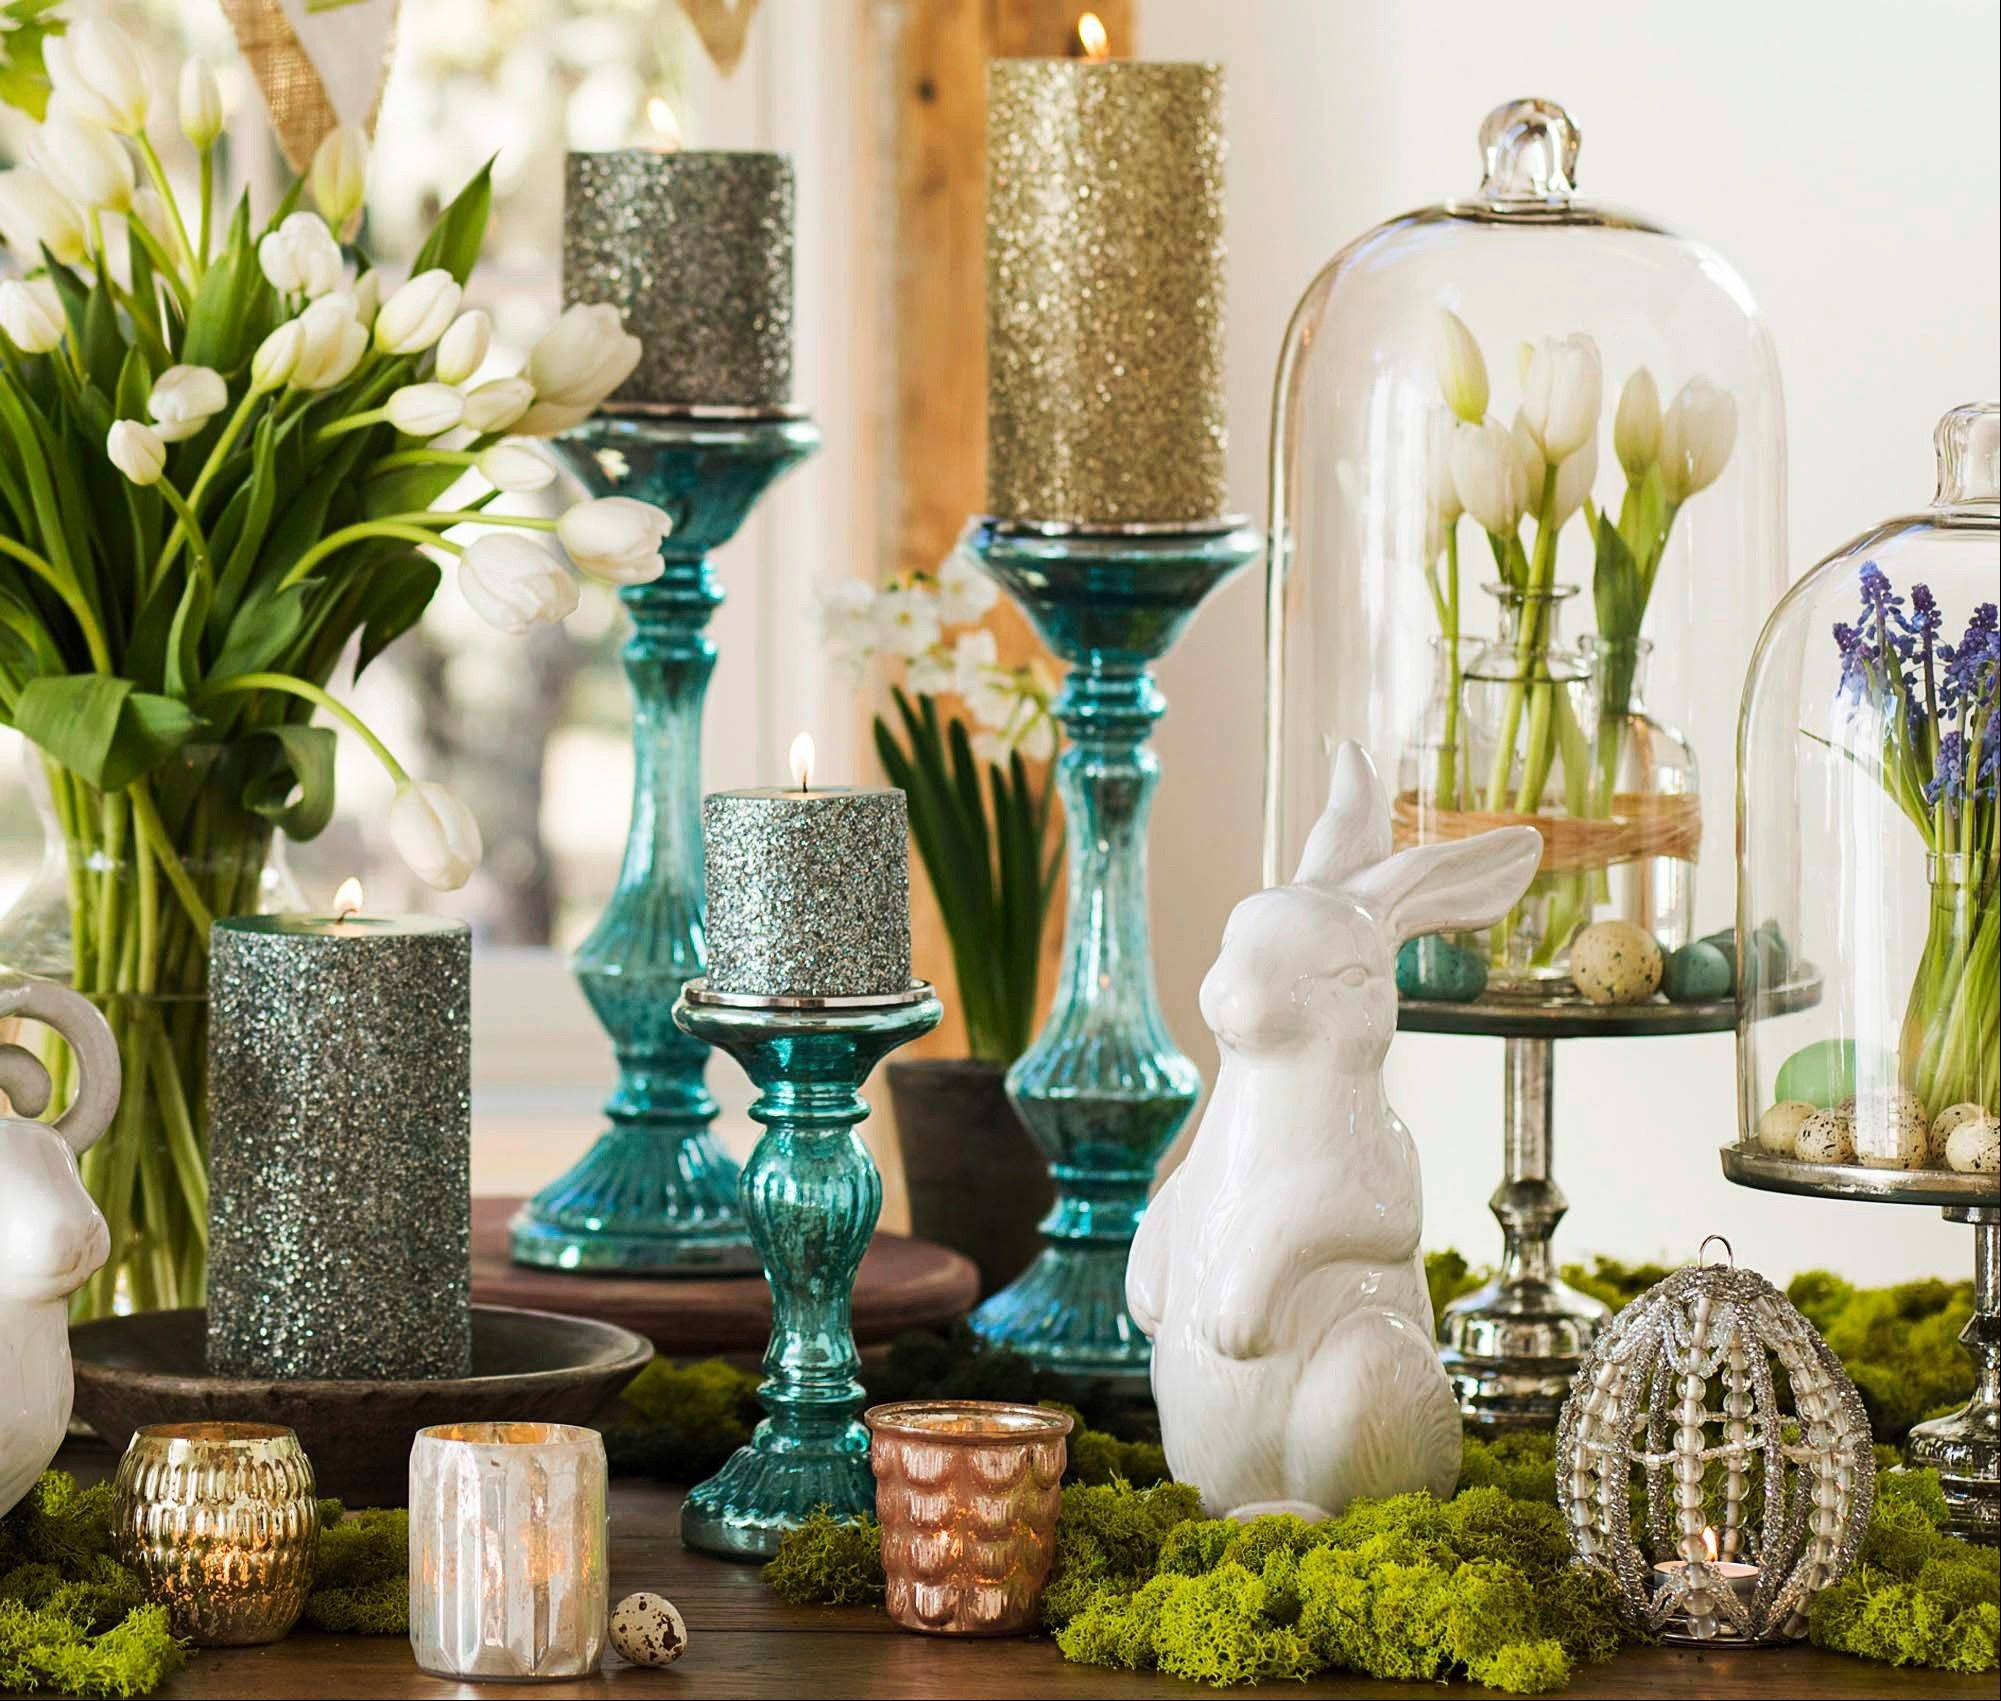 Blue Mercury glass from Pottery Barn brings in one of the iconic pastel hues of the Easter season in a fresh new way.